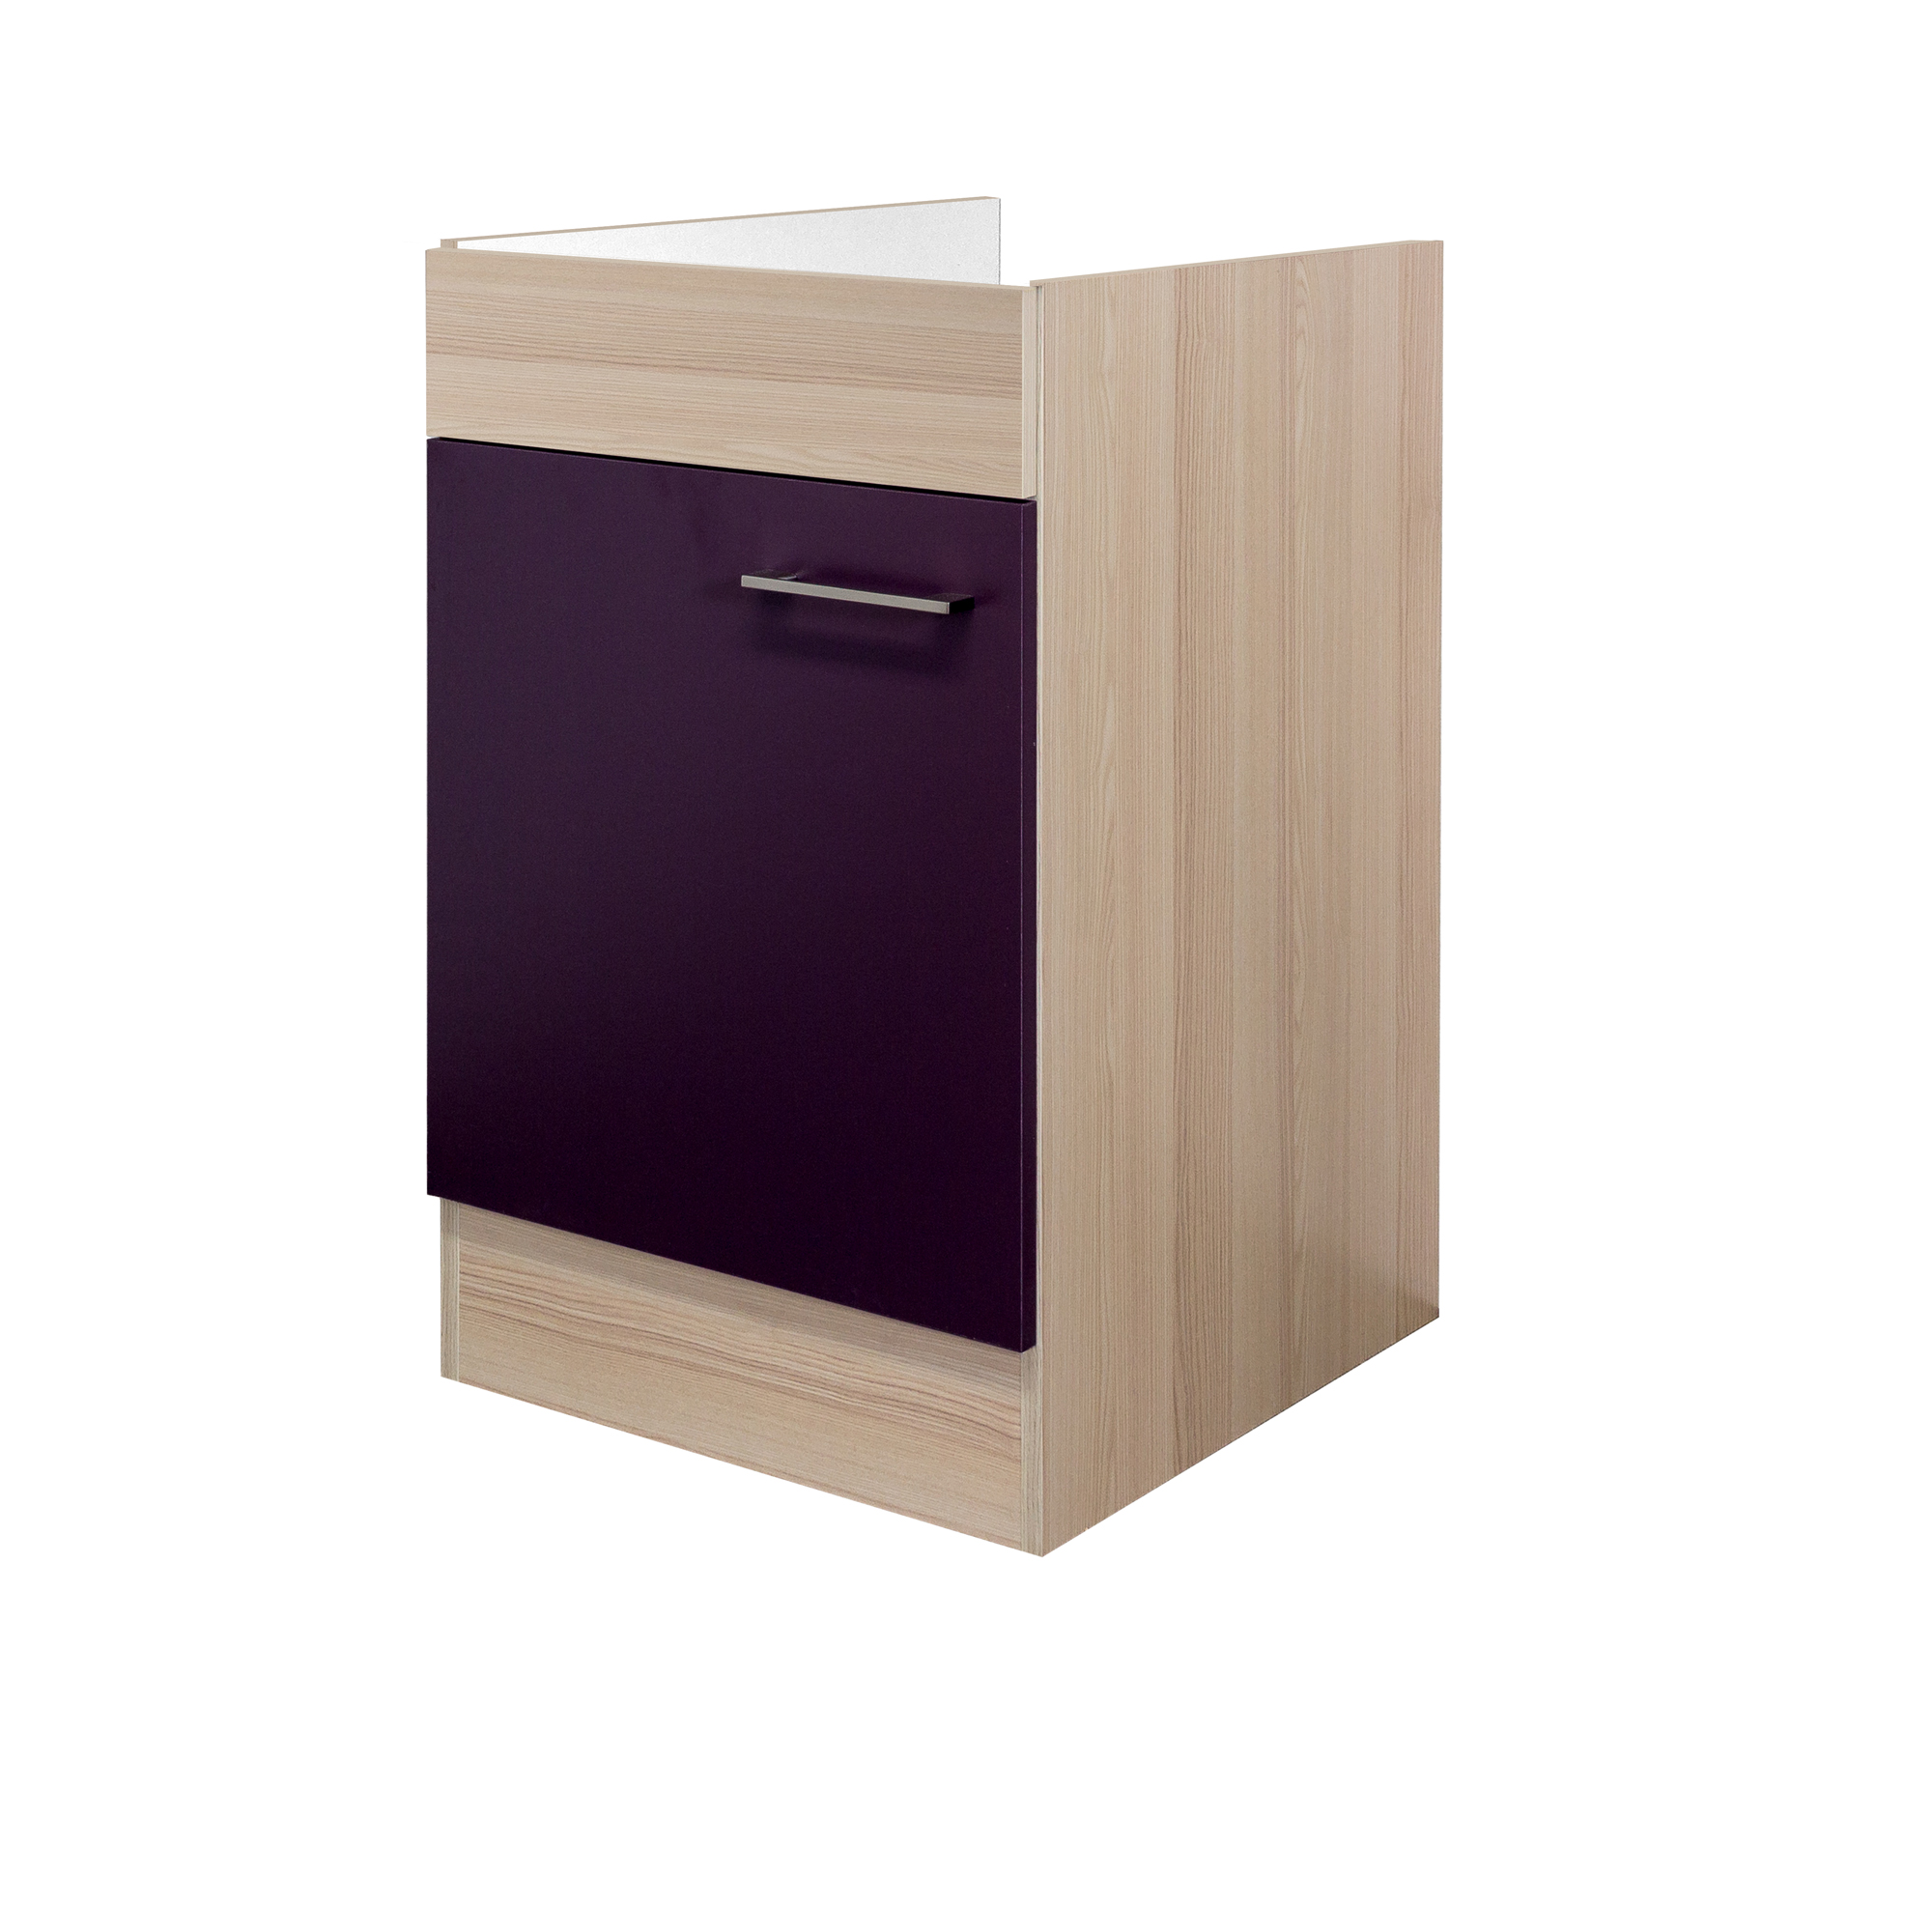 k chen sp lenunterschrank focus 1 t rig 50 cm breit aubergine k che sp lenschr nke. Black Bedroom Furniture Sets. Home Design Ideas